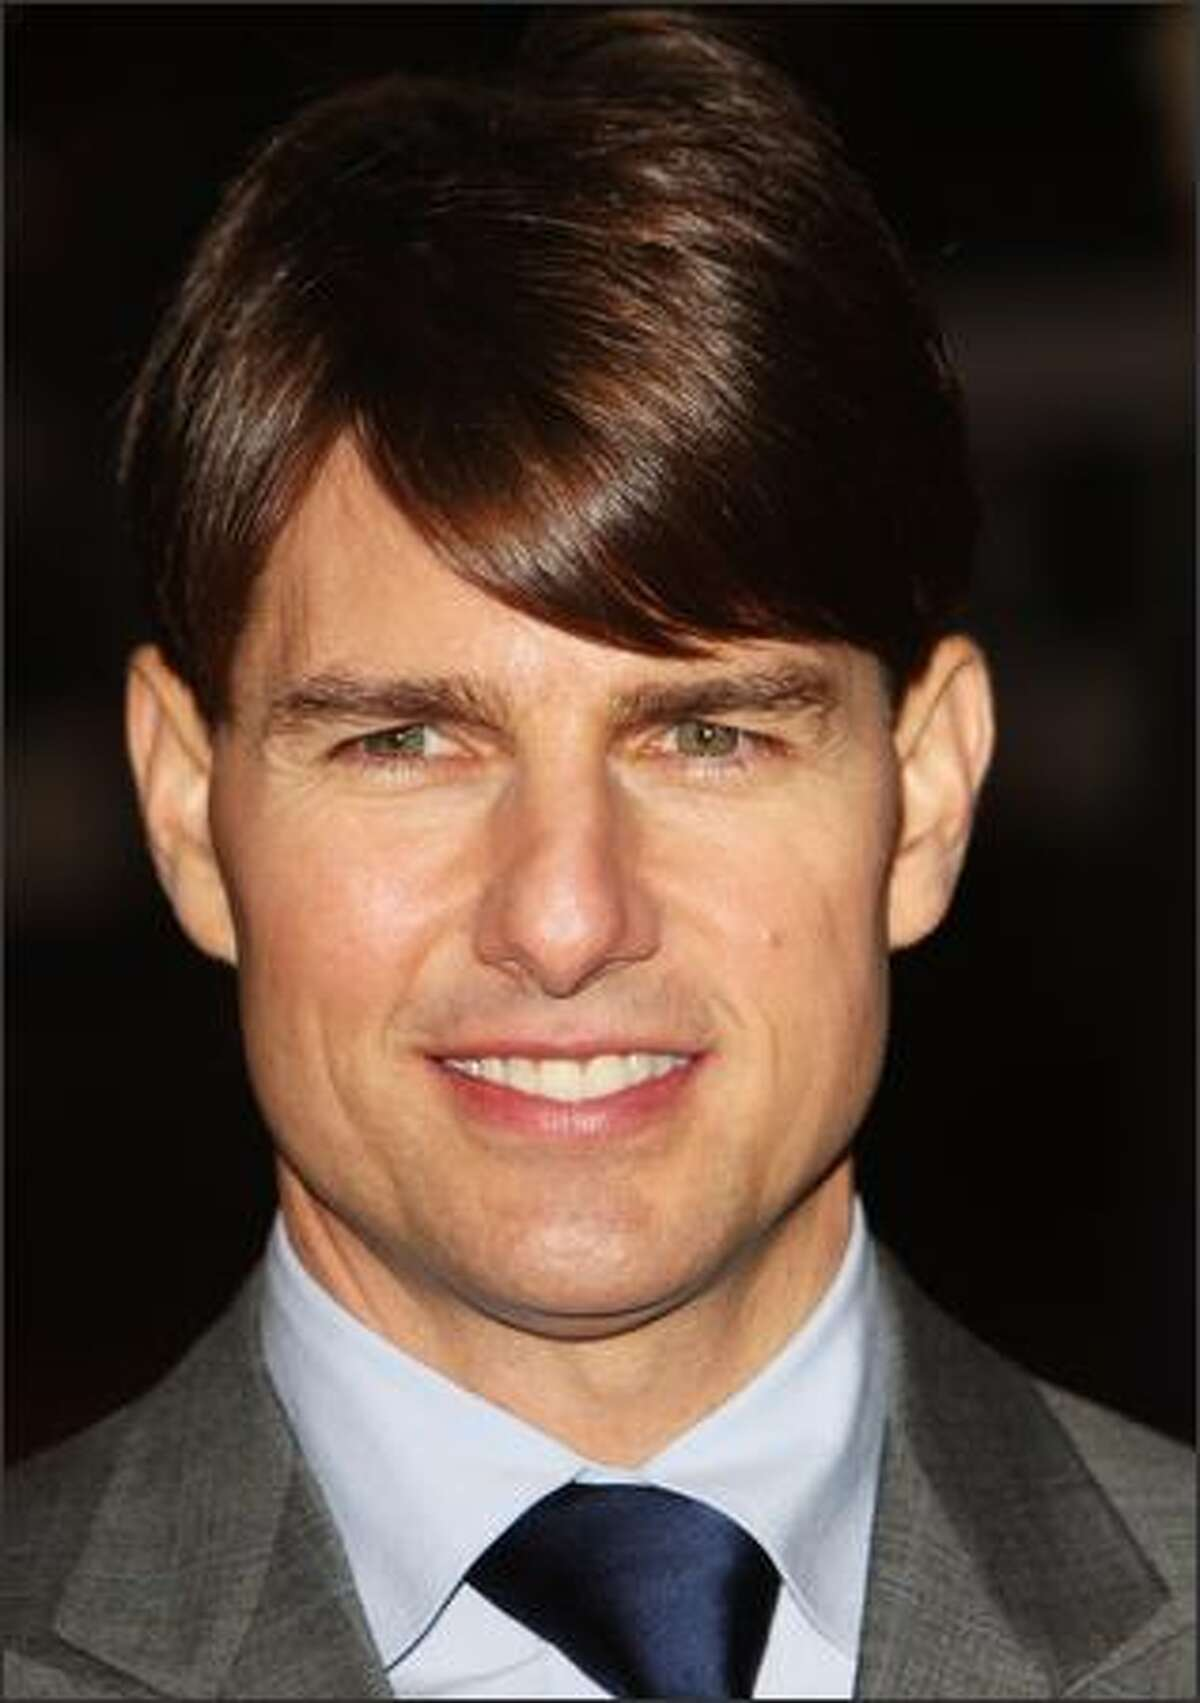 Actor Tom Cruise arrives at The Times BFI 51st London Film Festival gala screening and world premiere of 'Lions for Lambs' at the Odeon Leicester Square in London, England.